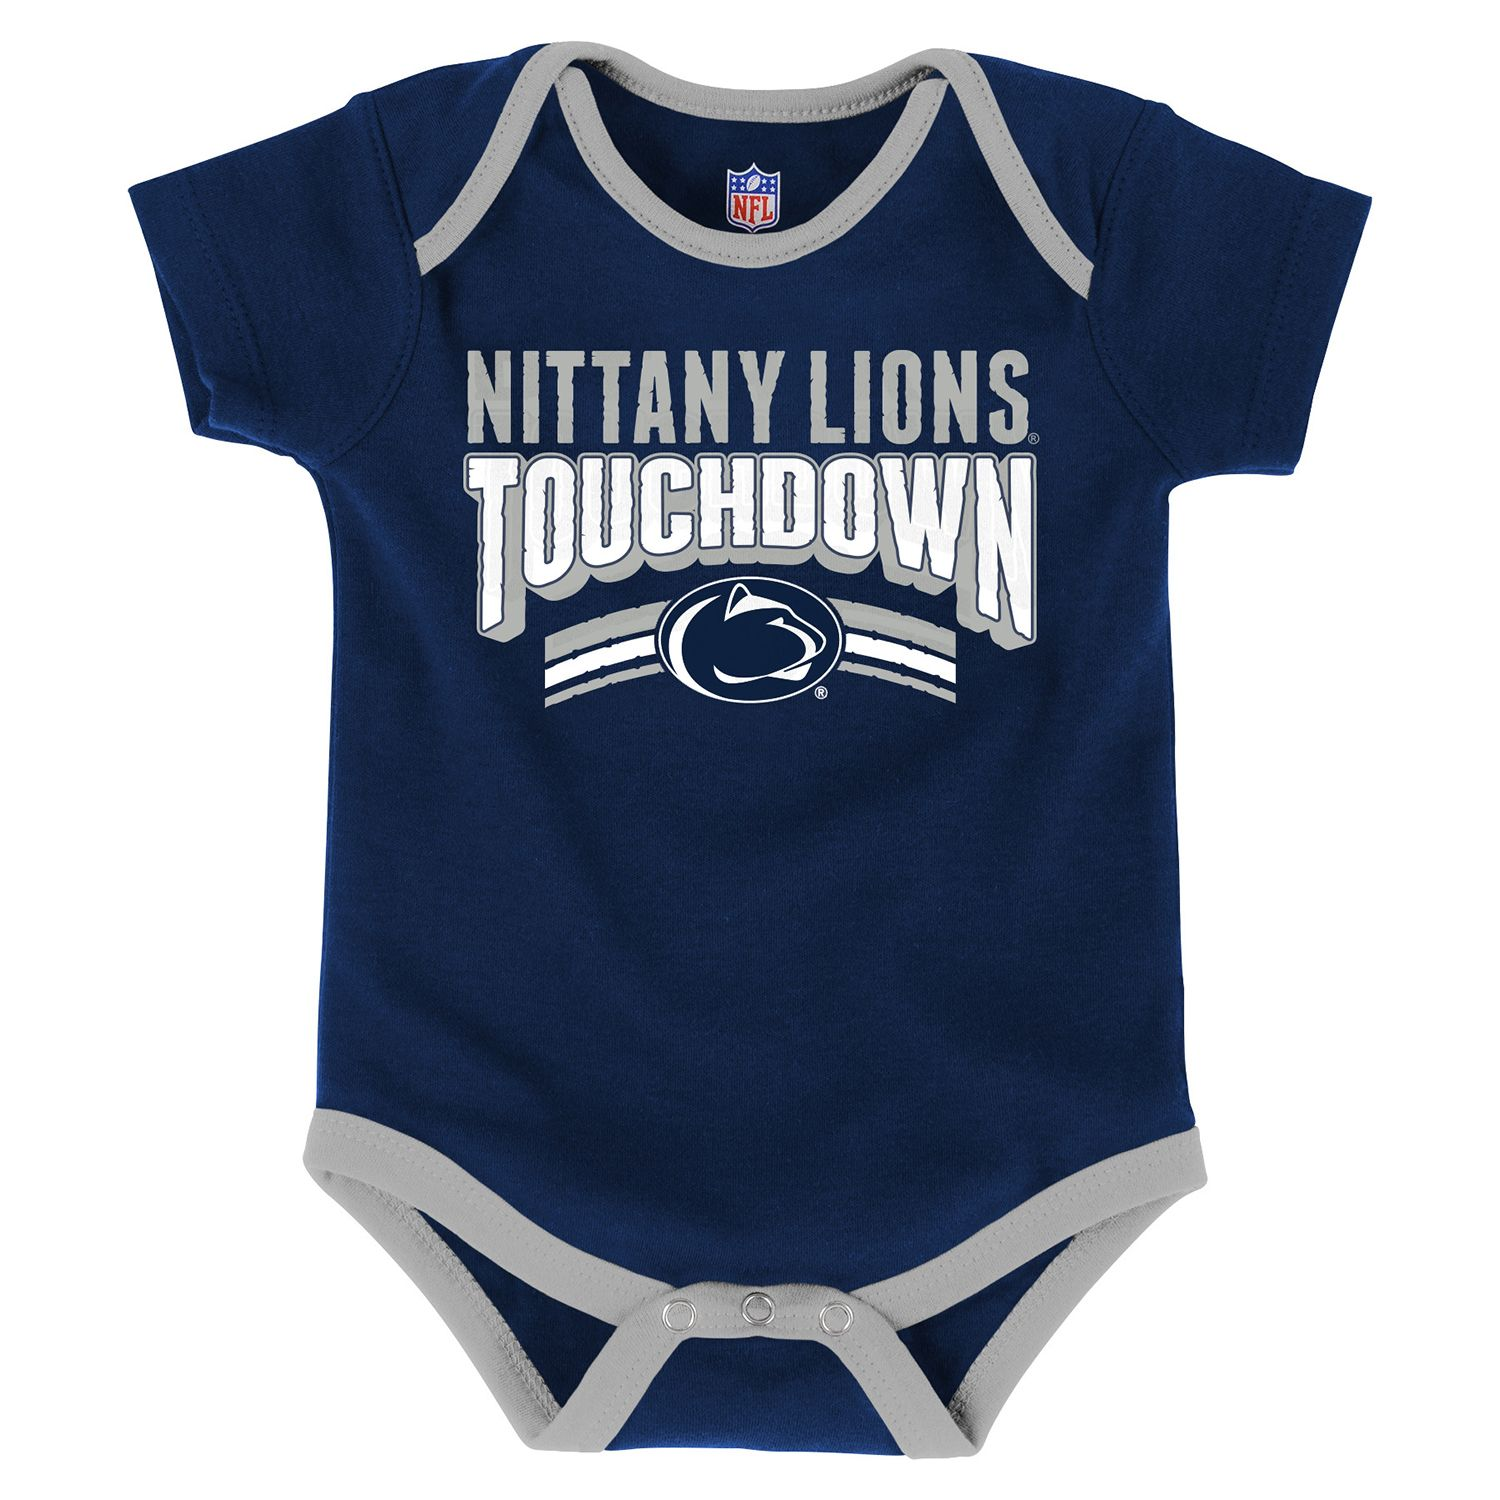 Penn State Baby Clothing